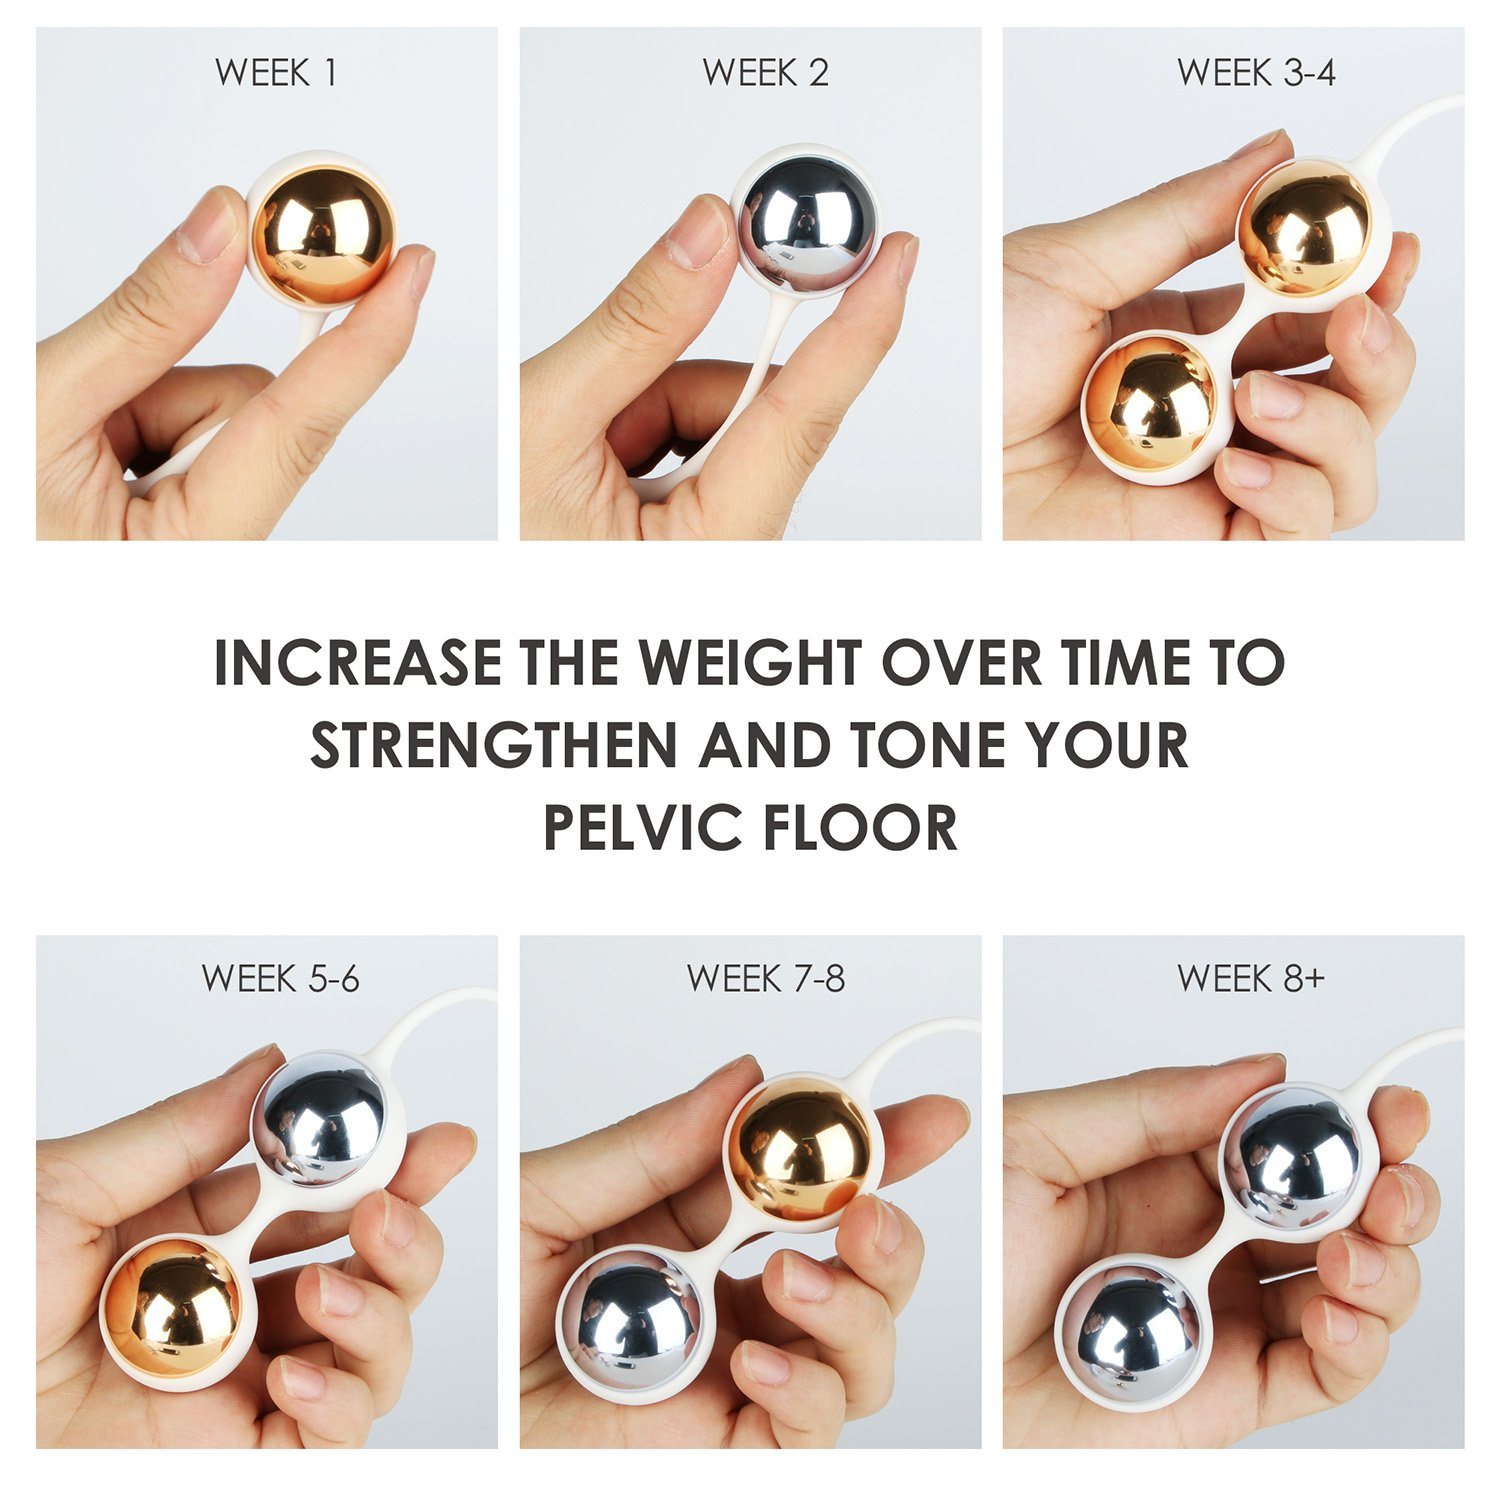 Kegel Balls for Beginner - Nalone Ben Wa Balls Kegel Exercise Weights Kit for Women to Tone and Strengthen your Pelvic Floor Muscle - Metal and Medical Silicone